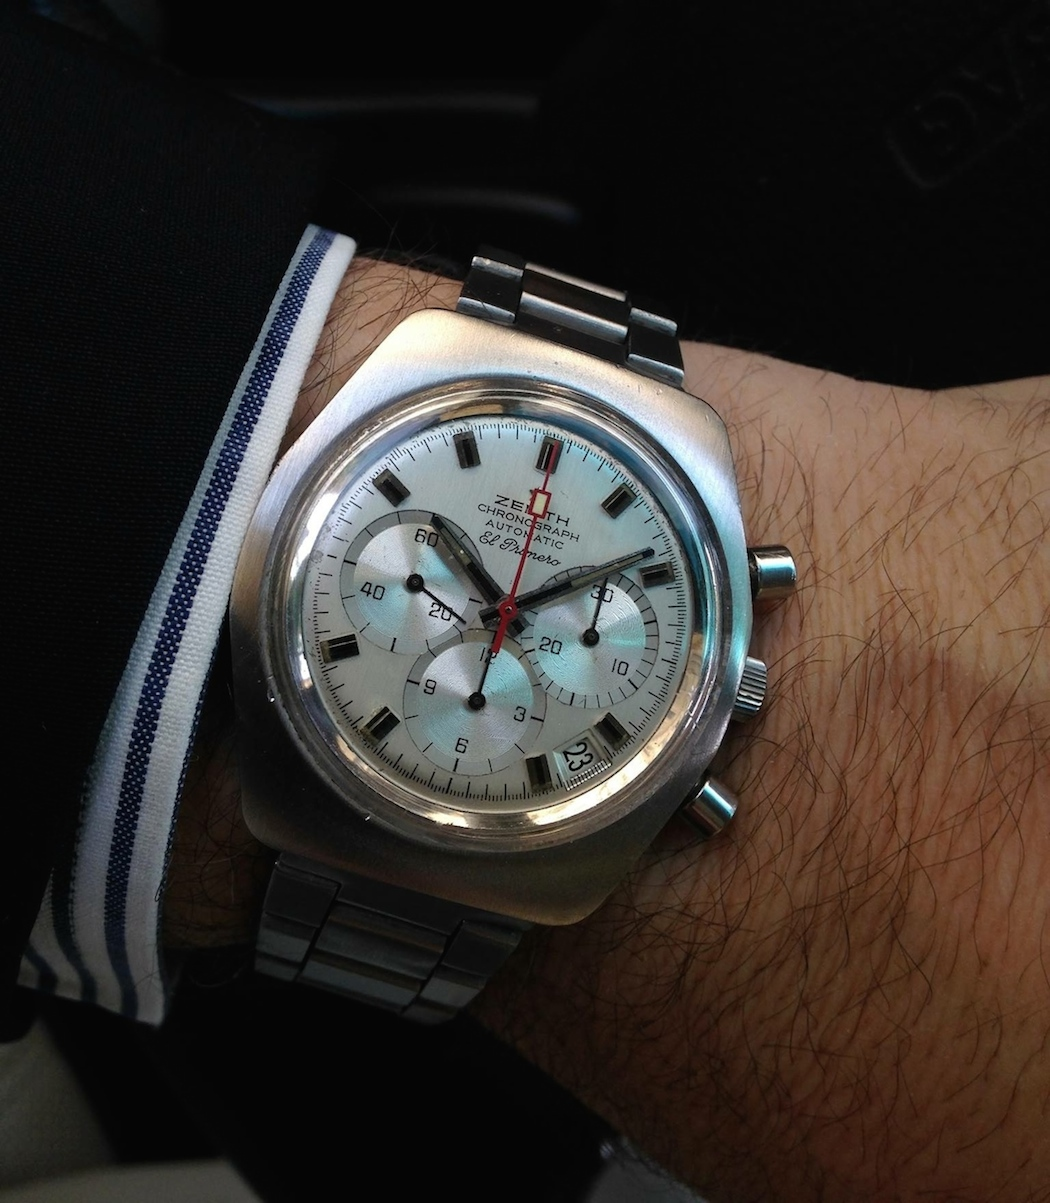 The Zenith El Primero A787 on the wrist (photo credit: @watchfred)